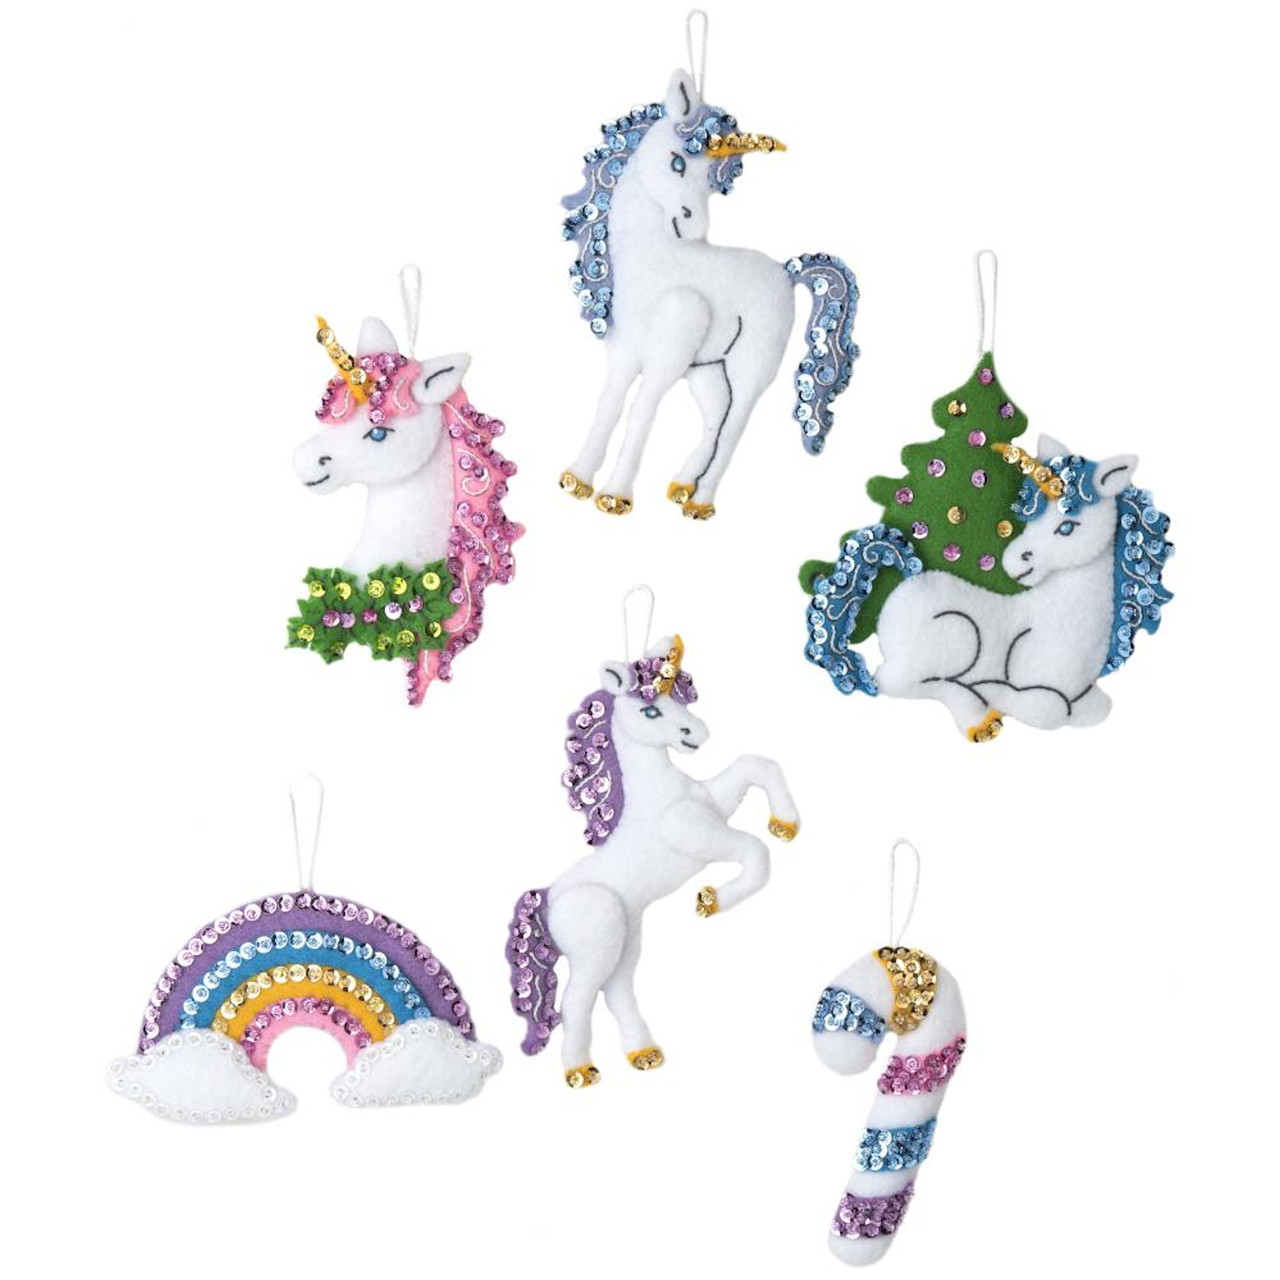 Plaid / Bucilla -  Santa's Unicorn Christmas Ornaments